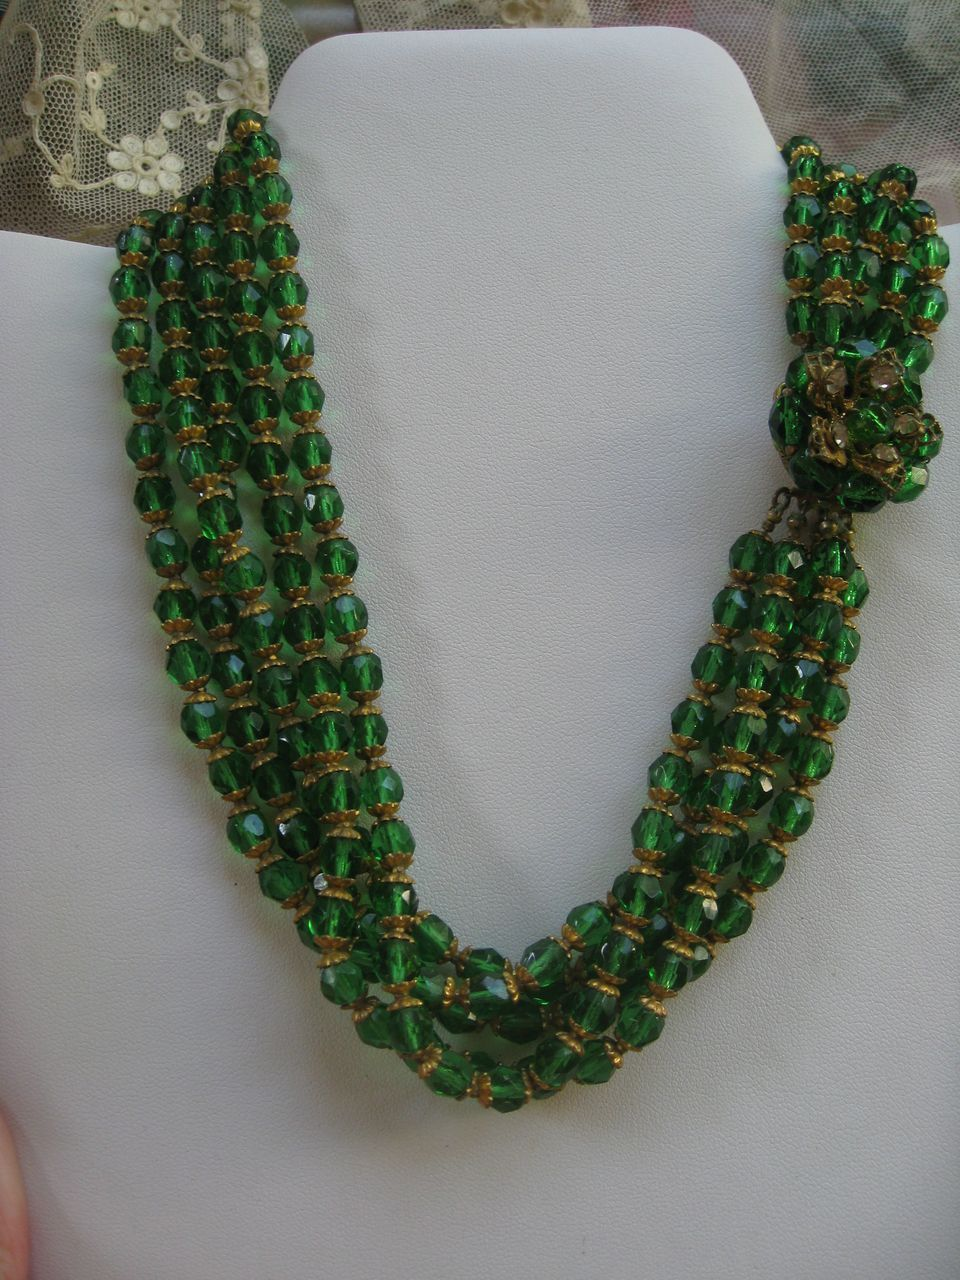 1940s Crystal Necklace